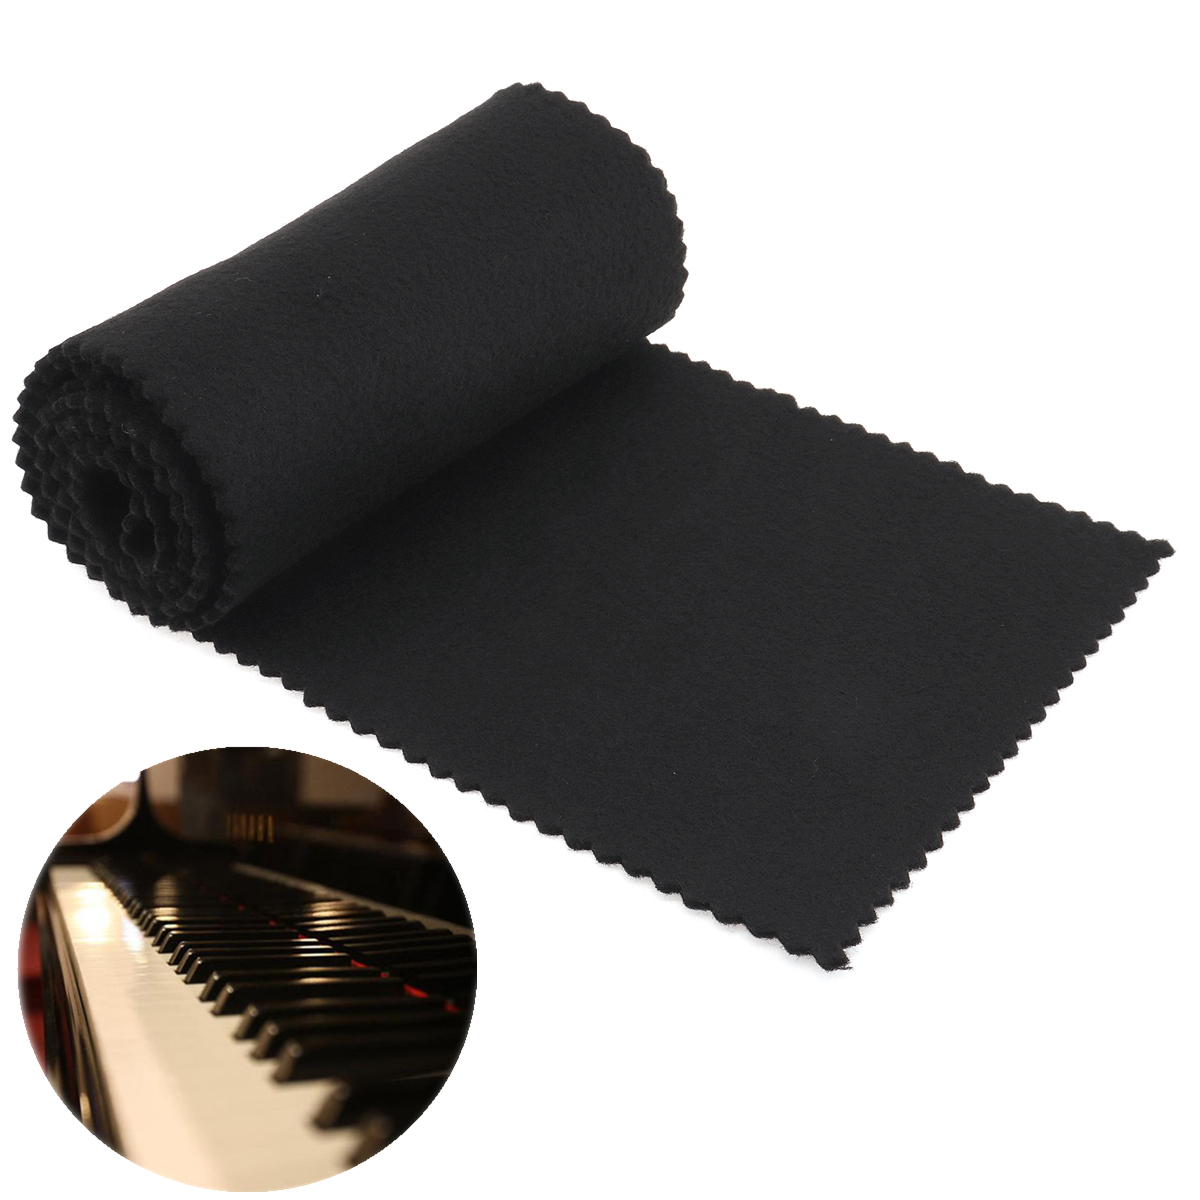 119 X 14cm Black Soft Piano Key Cover Keyboard Dust Covers